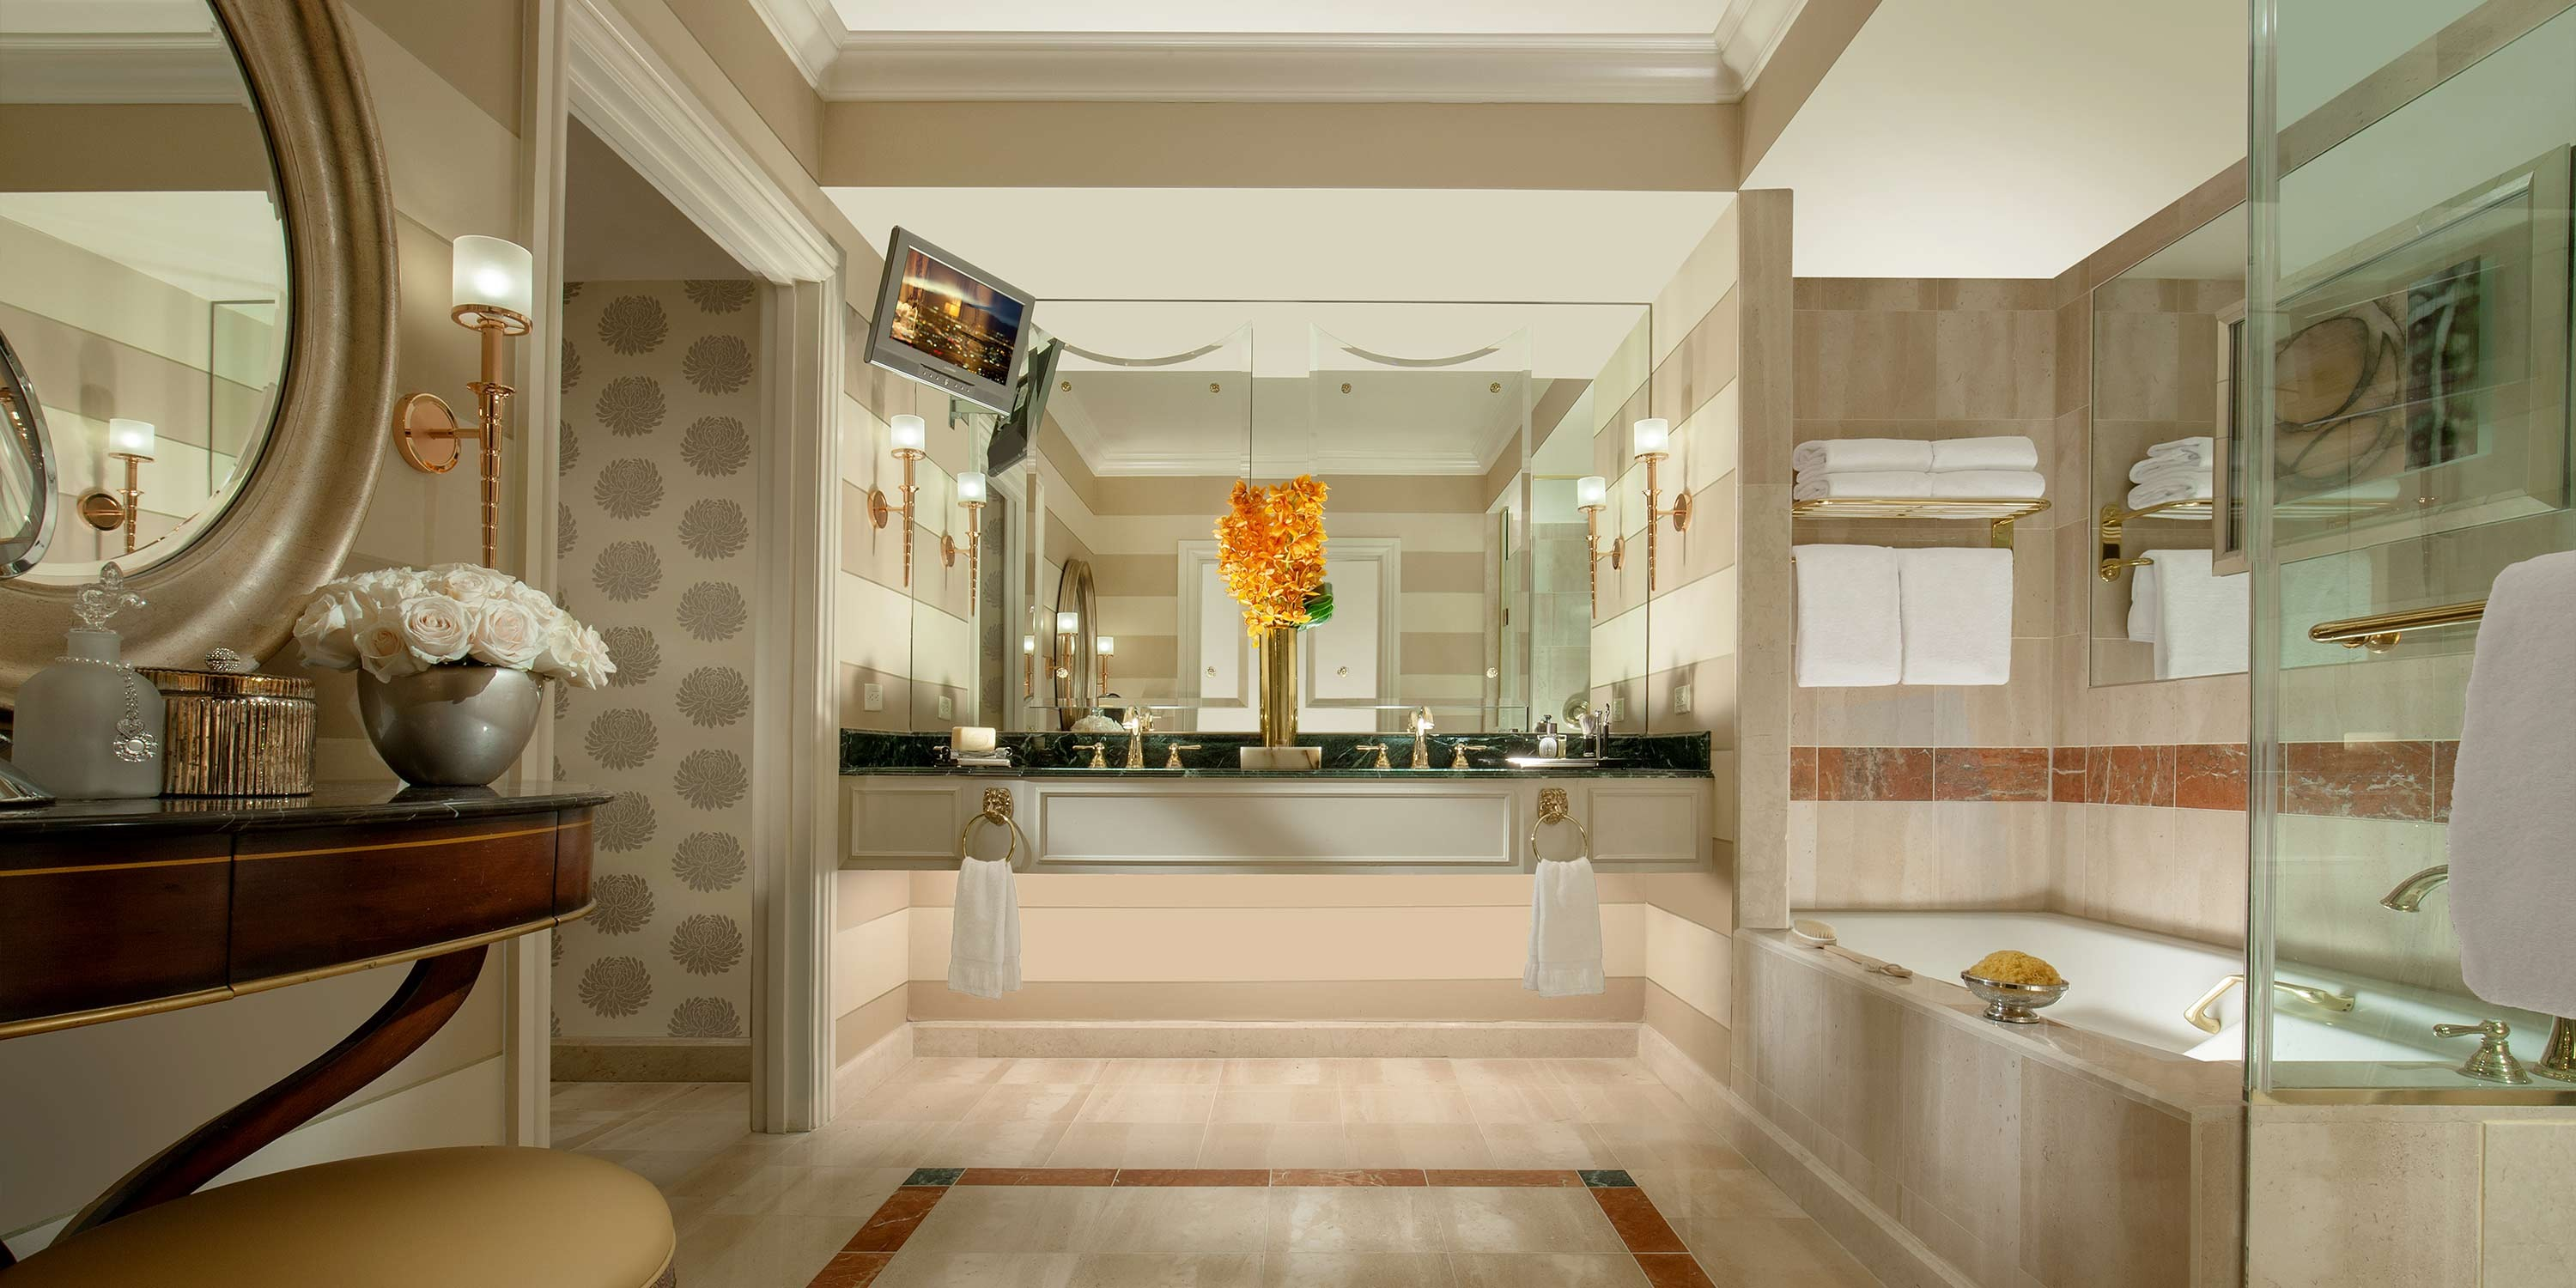 En Suite Bathrooms At The Cancun Resort In Las Vegas: Hotel Toiletries Manufacturers In Delhi And Hotel